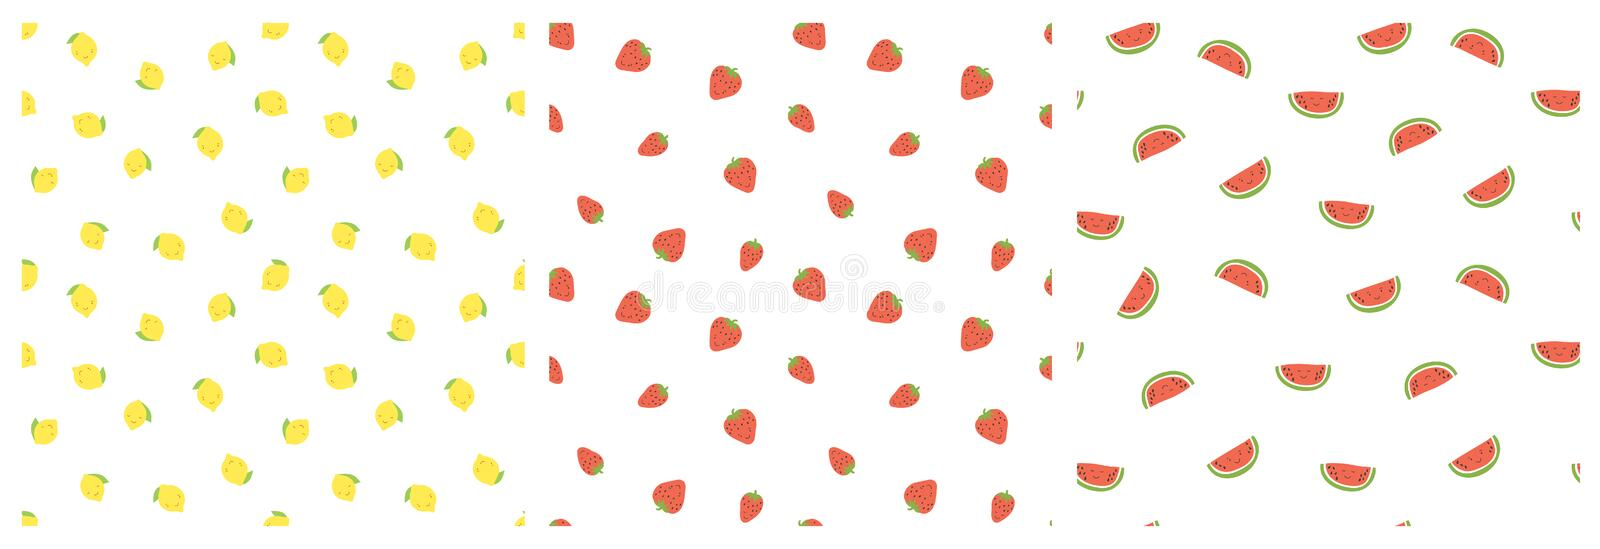 Kid`s seamless pattern. Smiling lemon, strawberry, watermelon. Exotic fruit fashion print. Design elements for baby textile or royalty free illustration